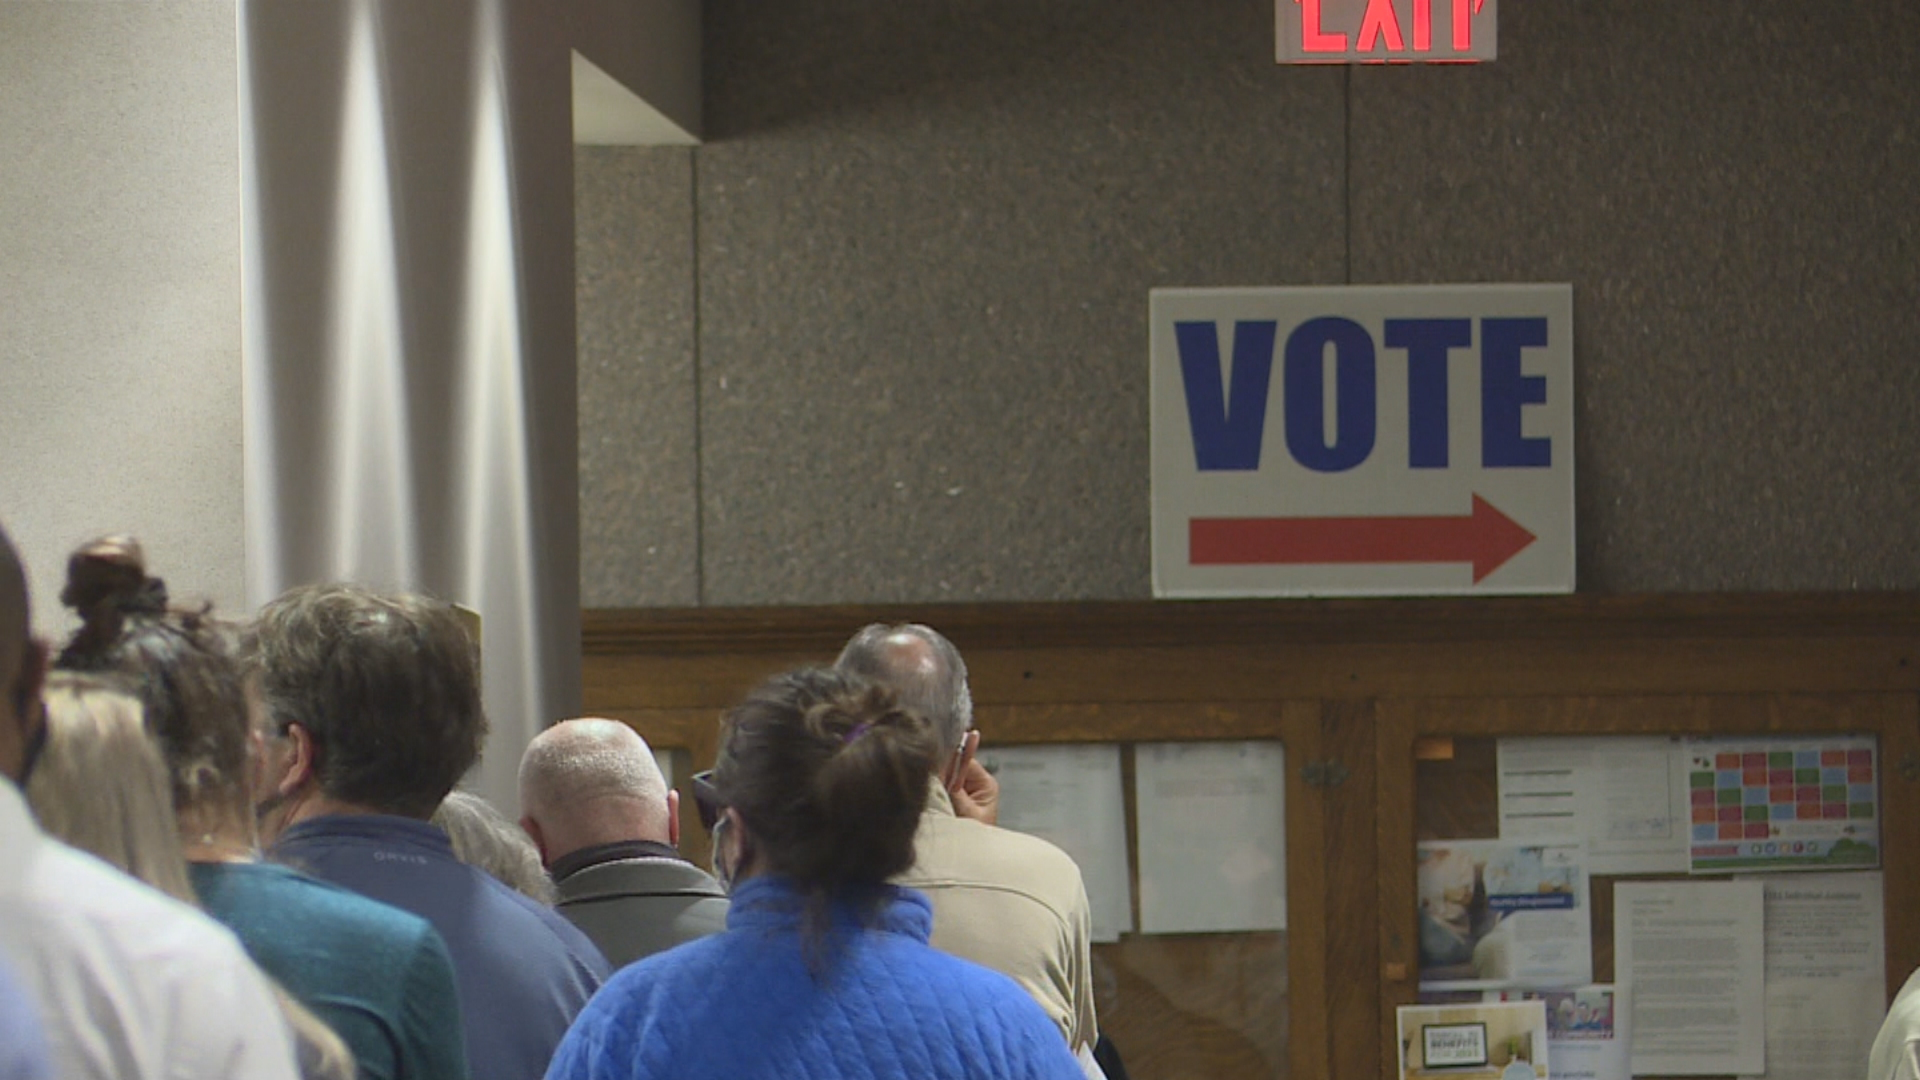 Record-breaking voter turnout in Hamilton County comes without excessive wait times - WISH-TV | Indianapolis News | Indiana Weather